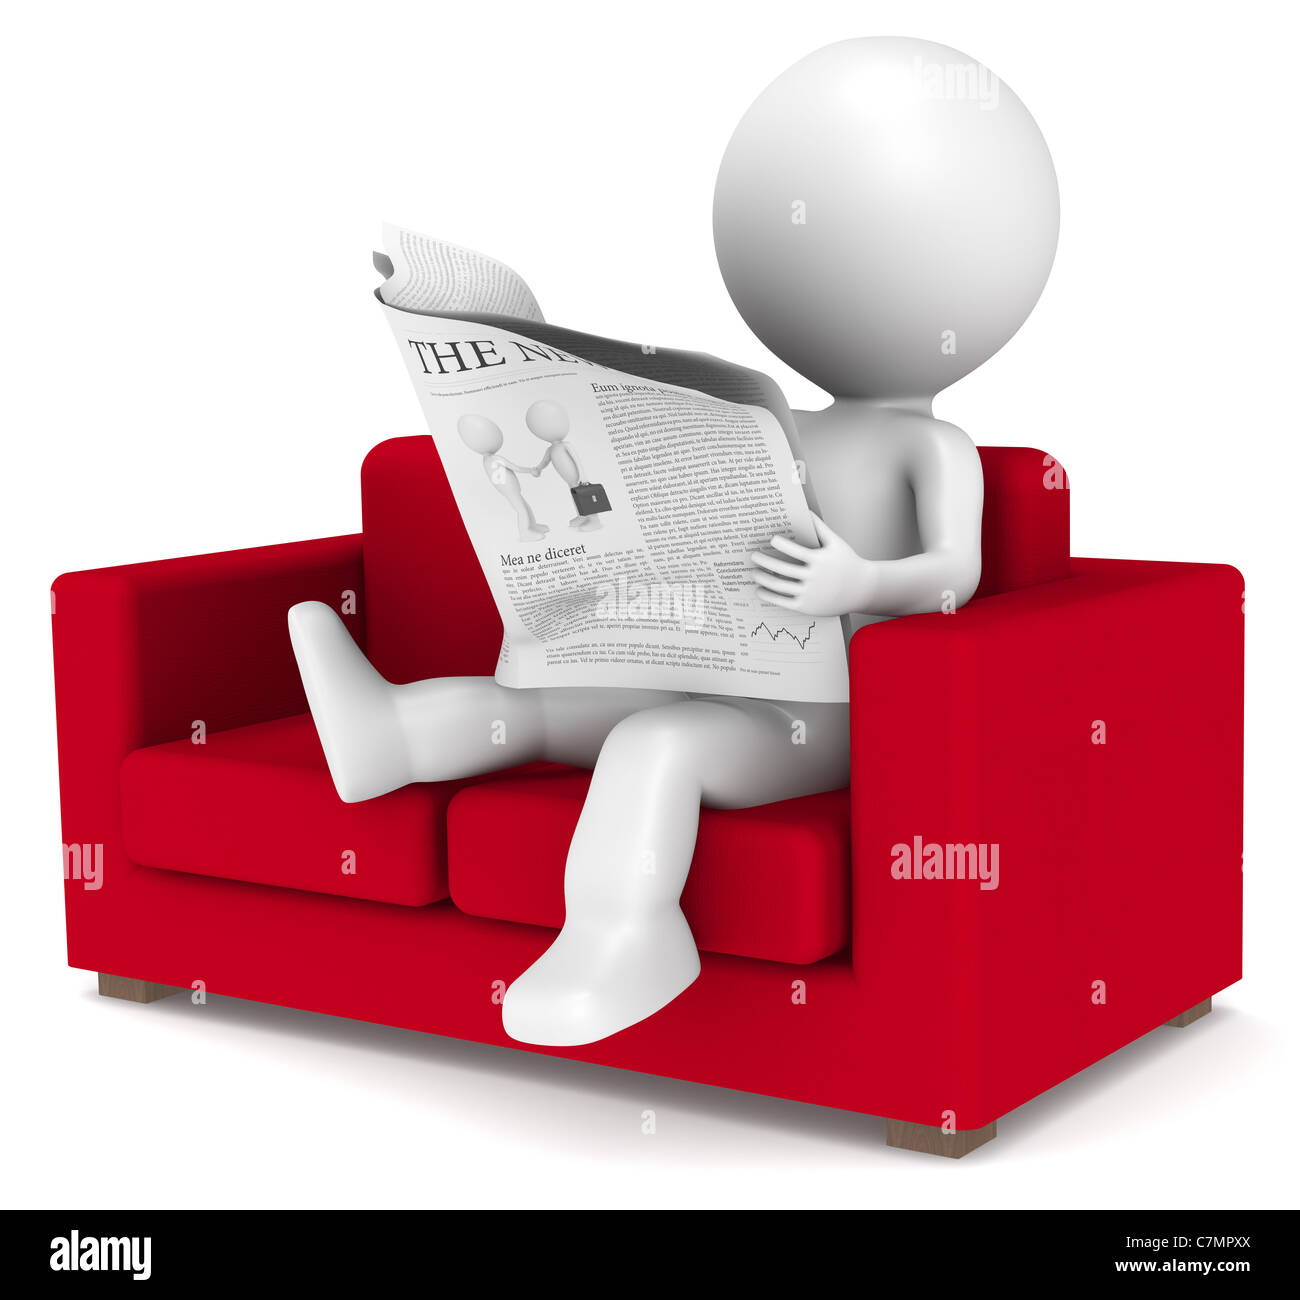 Merveilleux 3D Little Human Character Sitting In The Sofa Reading The News. People  Series.